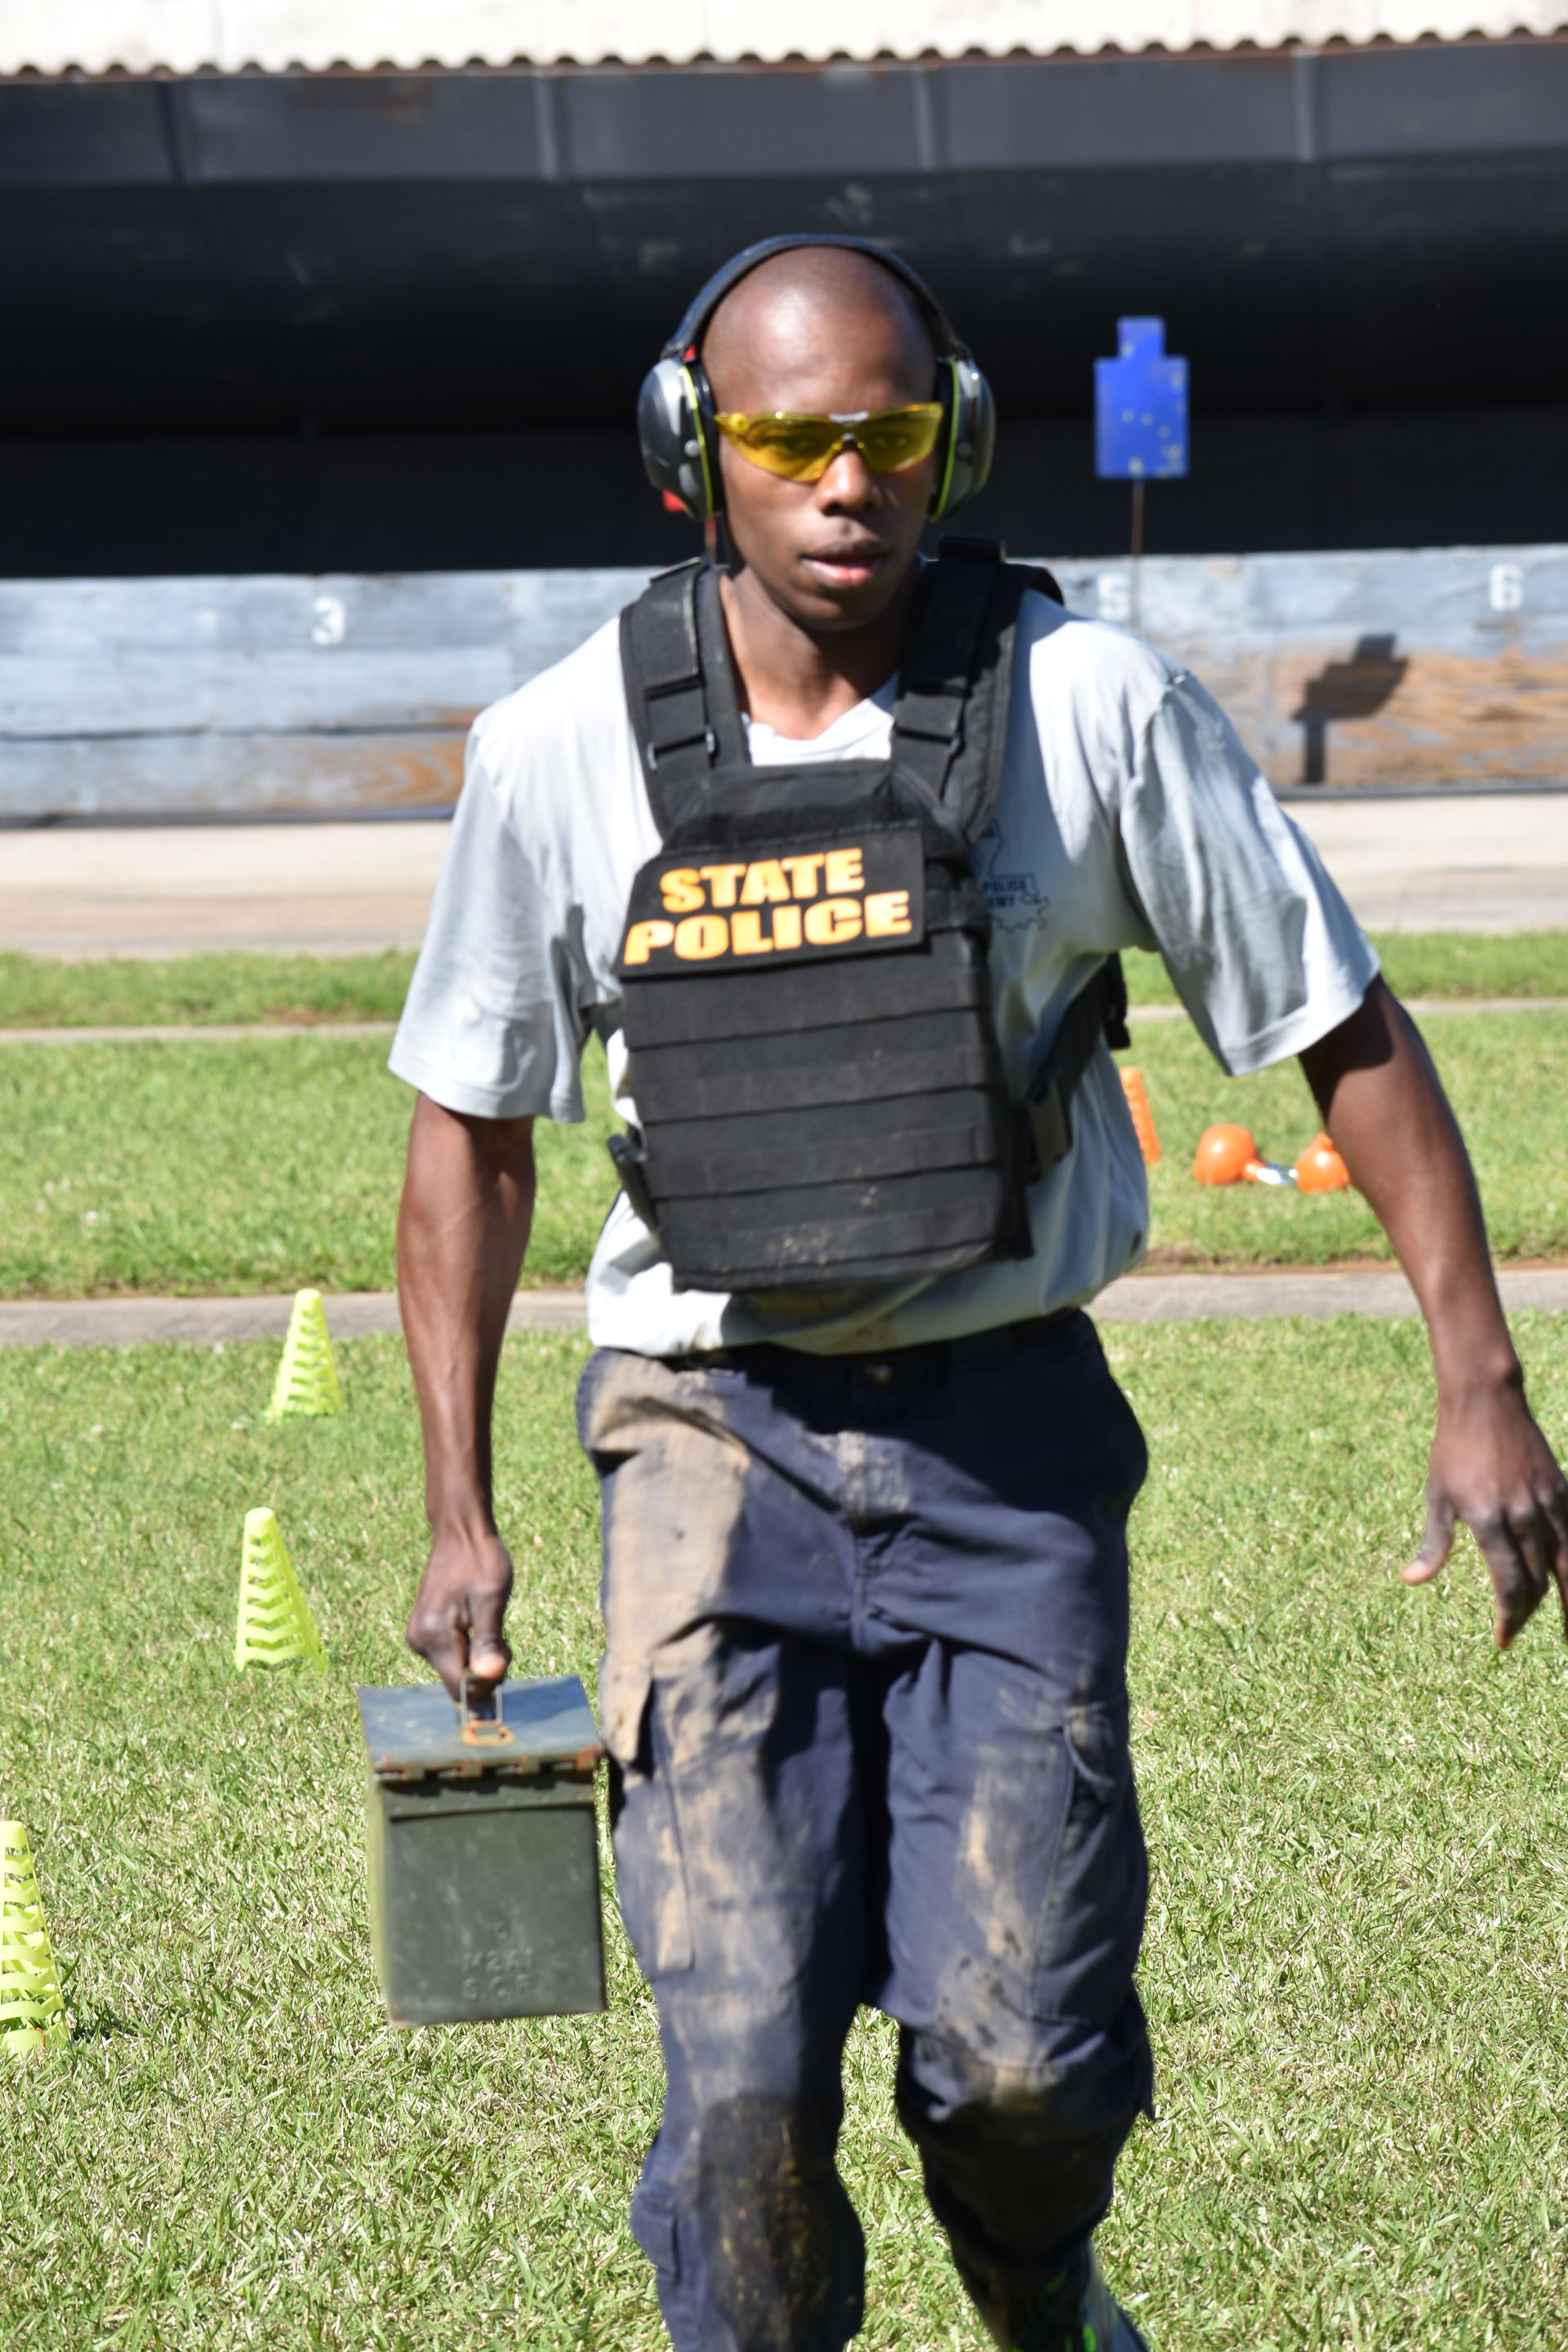 Louisiana State Police - Training Academy